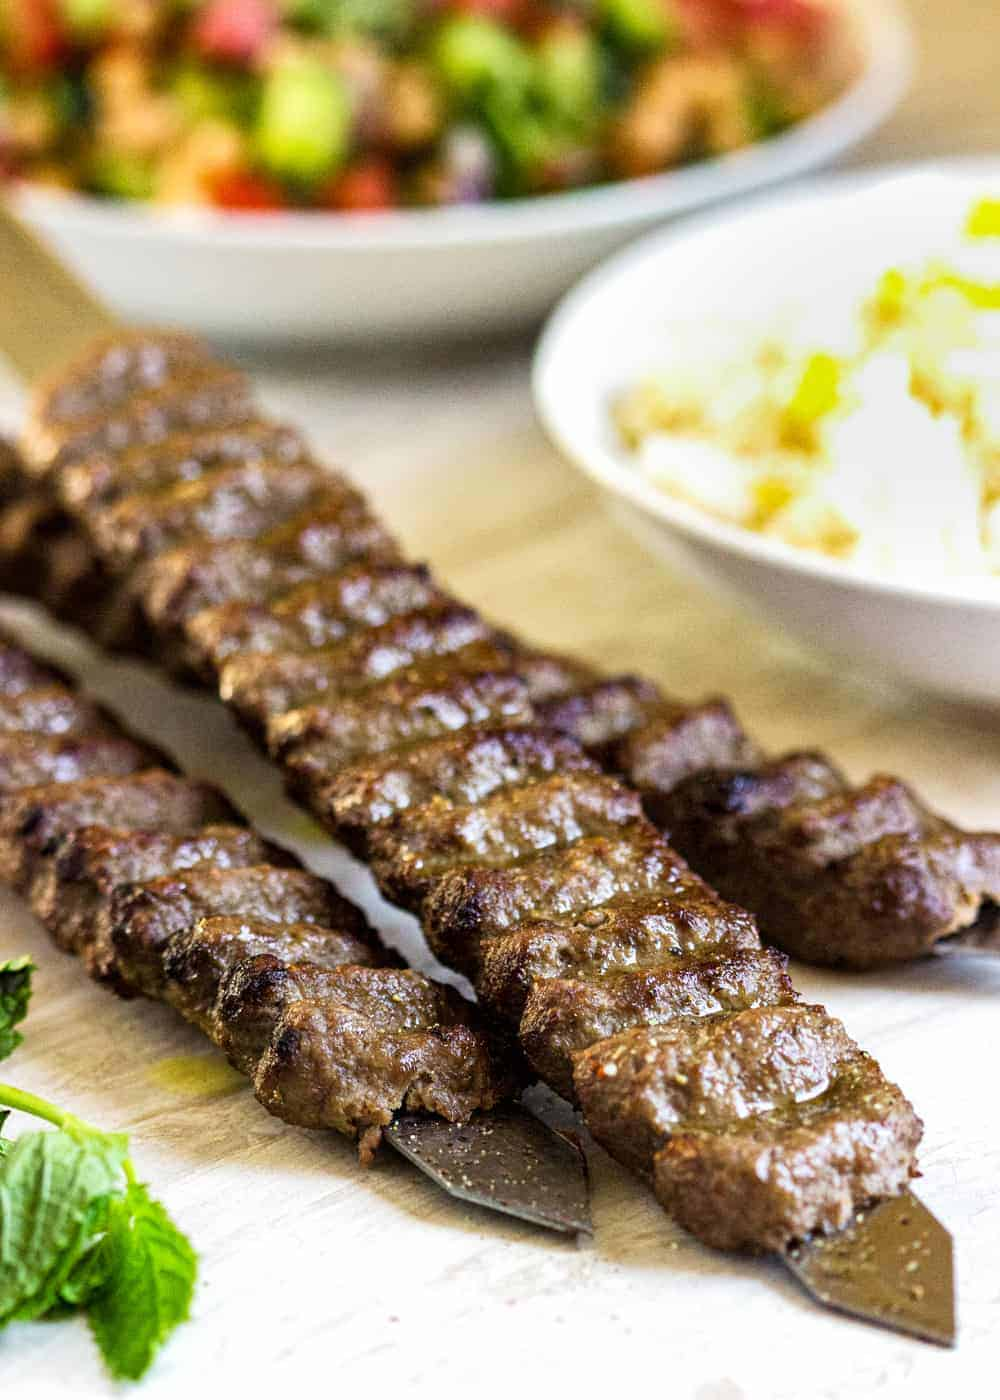 beef and lamb kabobs on a table with bowls of side dishes